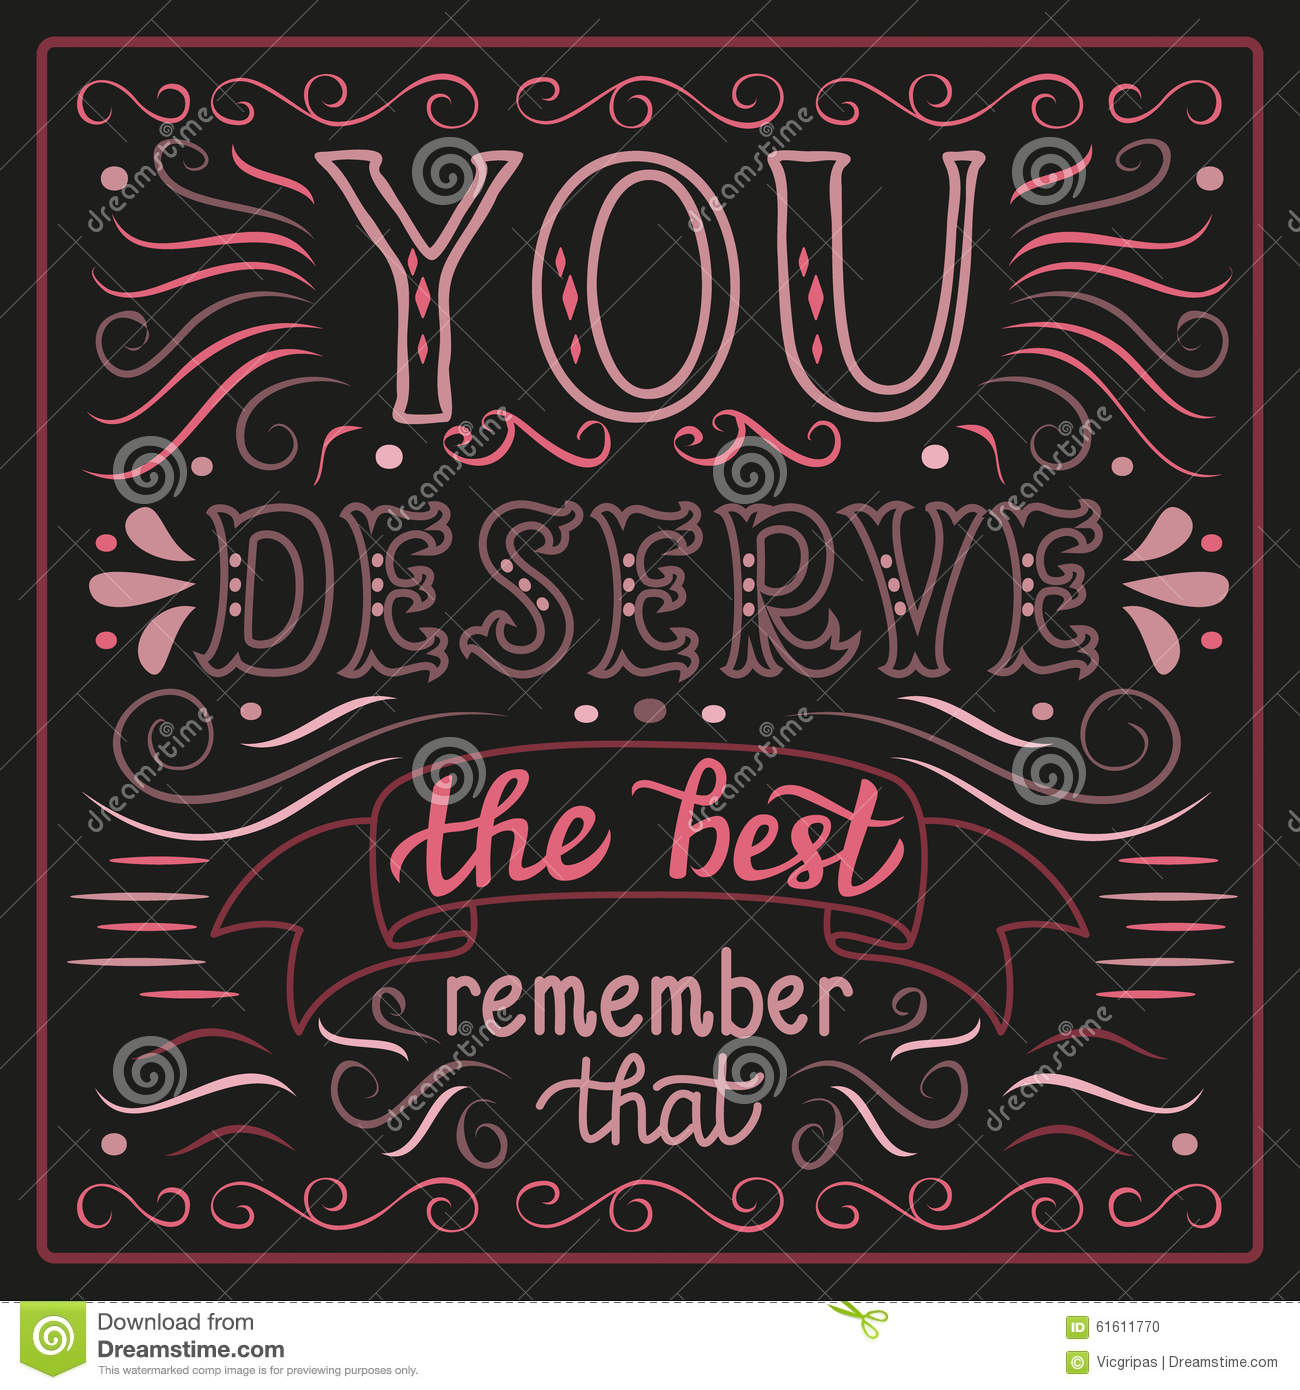 You Deserve The Best Poster Stock Vector Image 61611770